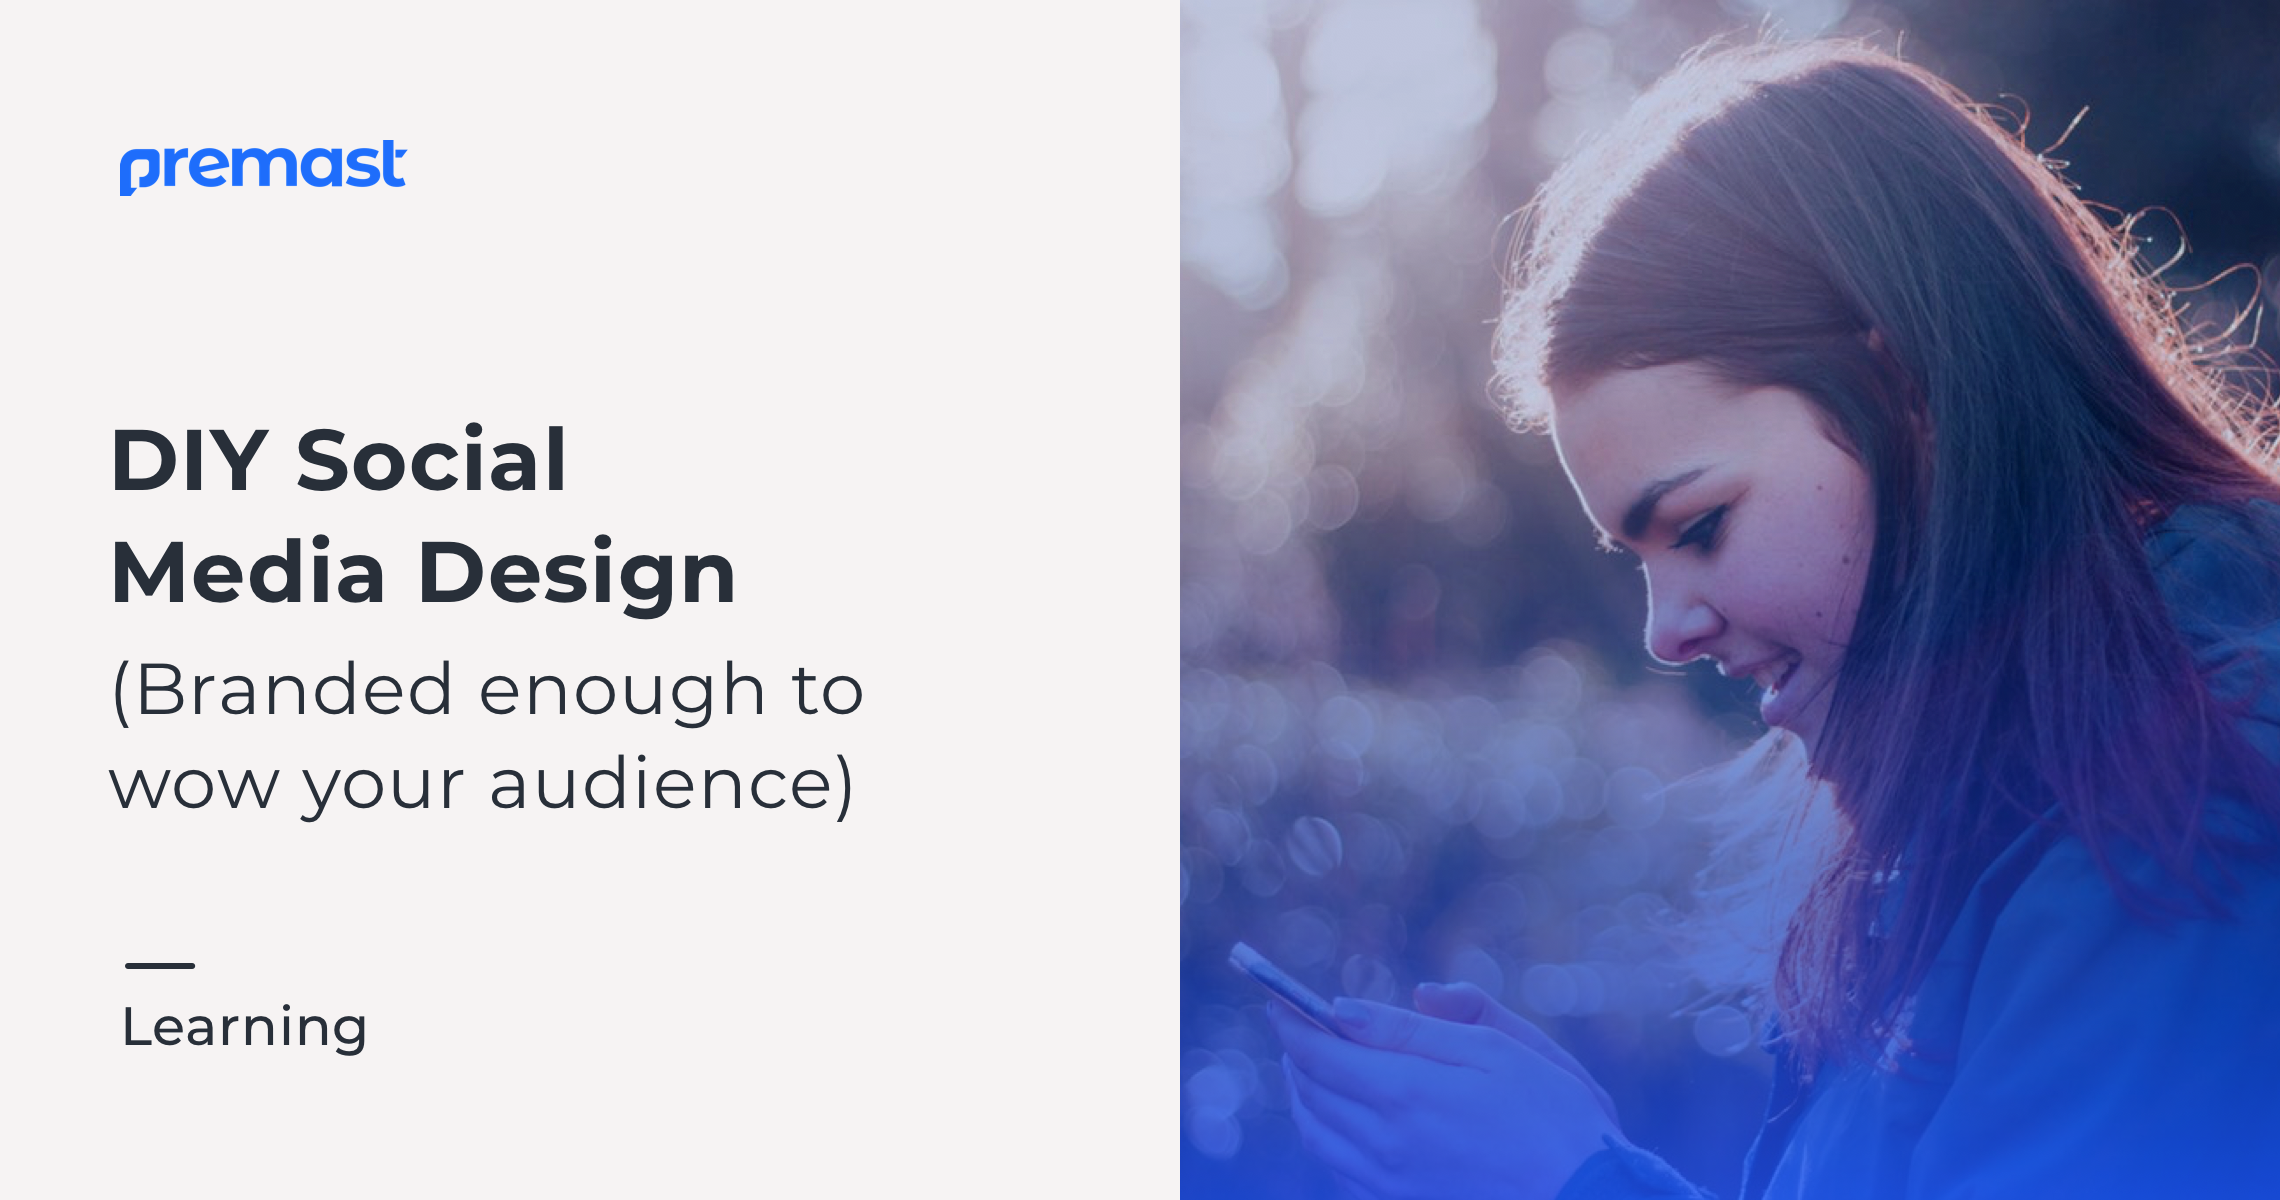 DIY Social Media Design: Branded Enough To Wow Your Audience